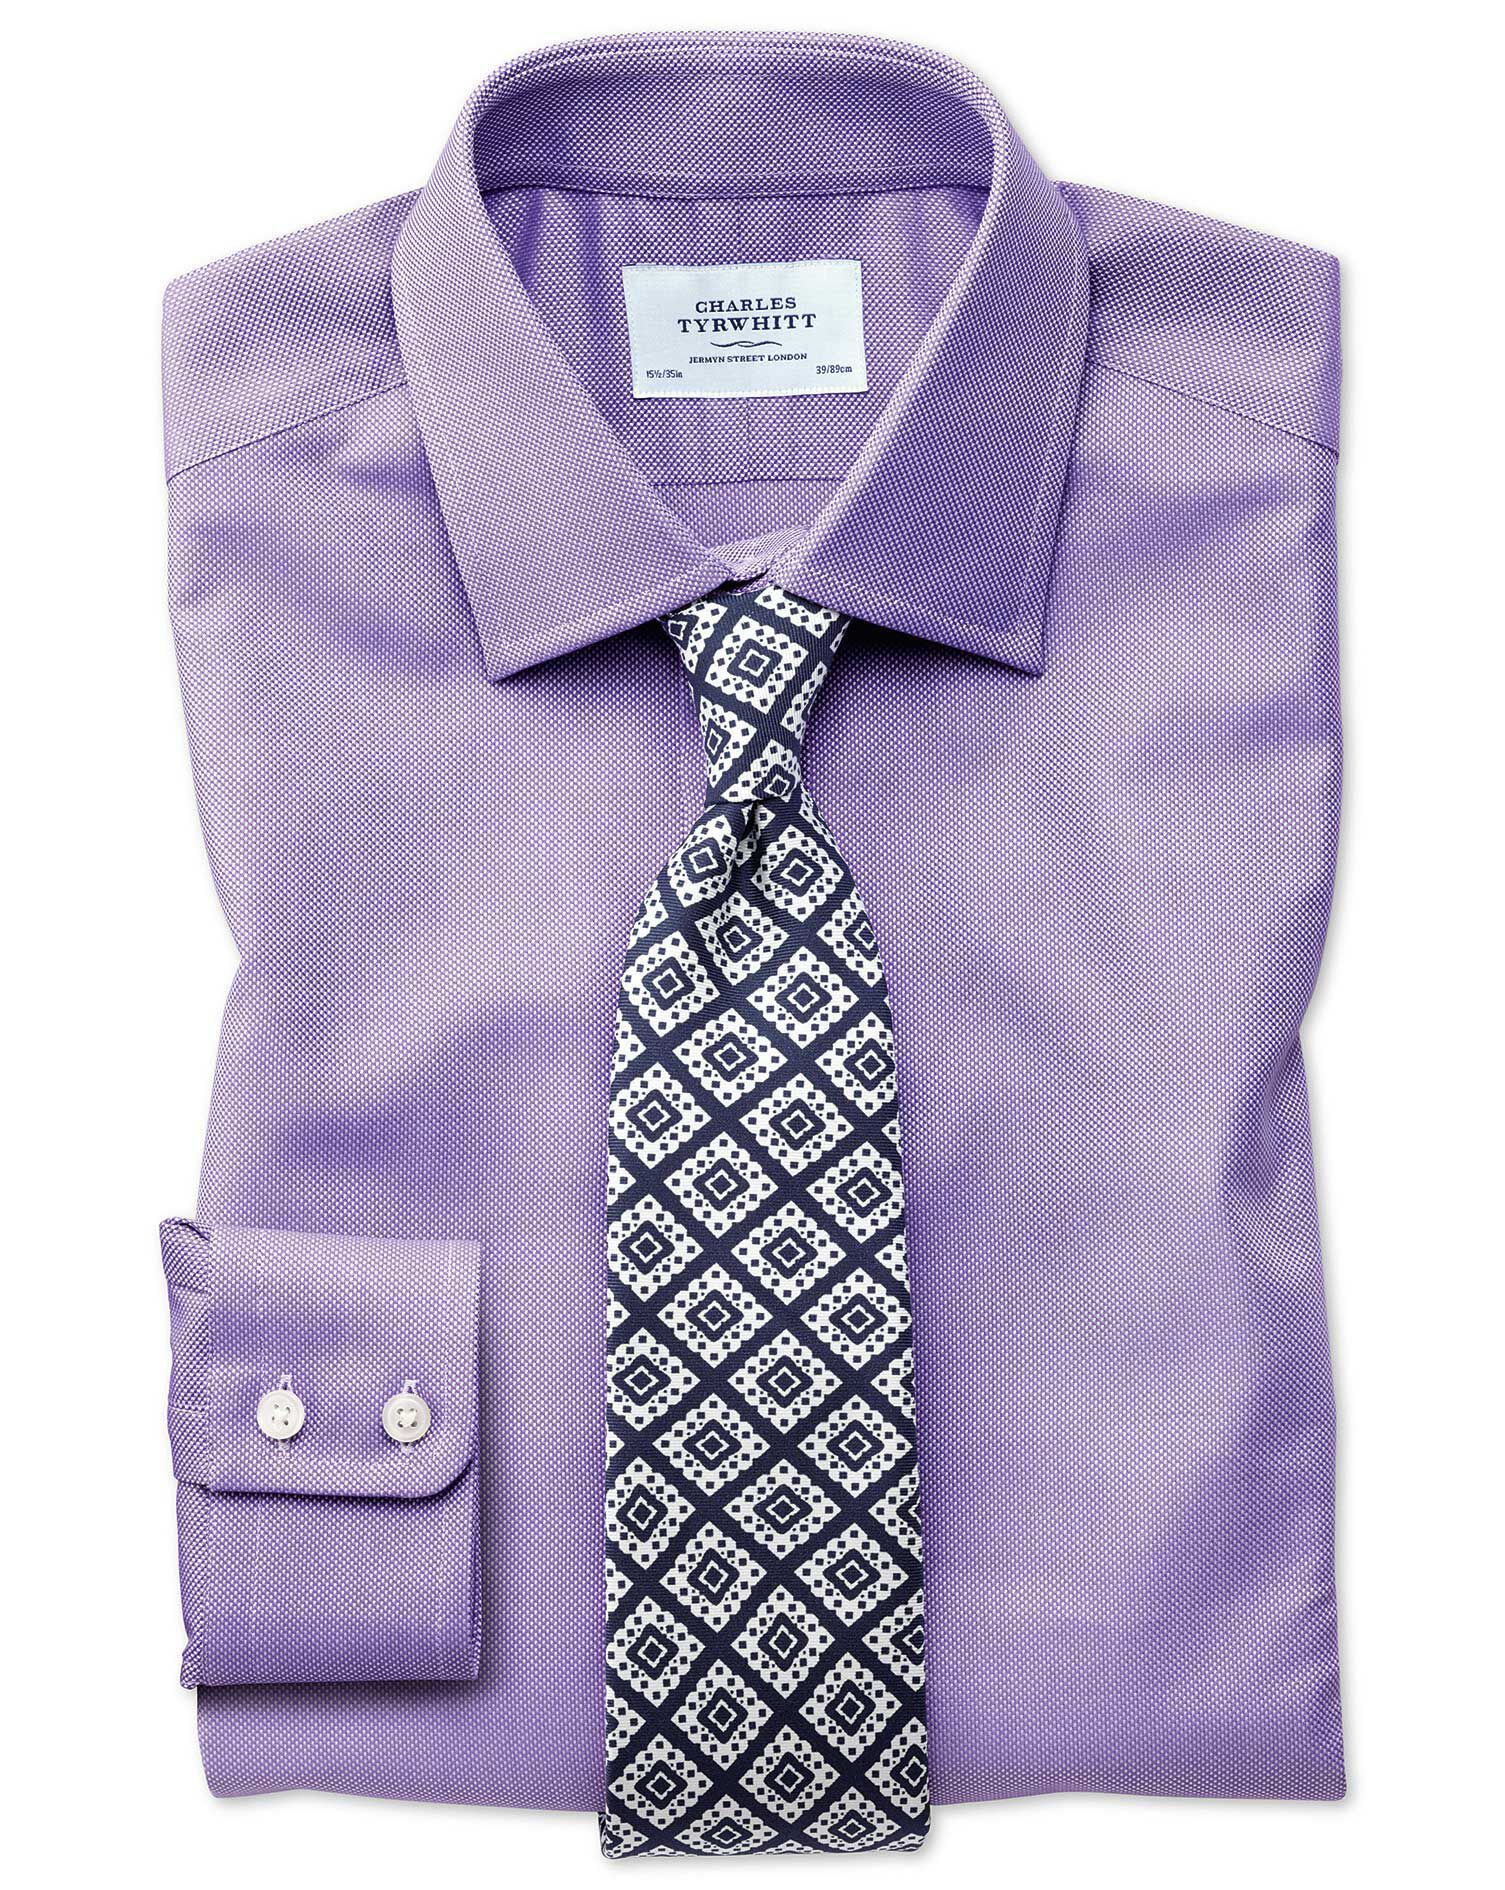 Extra Slim Fit Egyptian Cotton Royal Oxford Lilac Formal Shirt Single Cuff Size 14.5/32 by Charles T